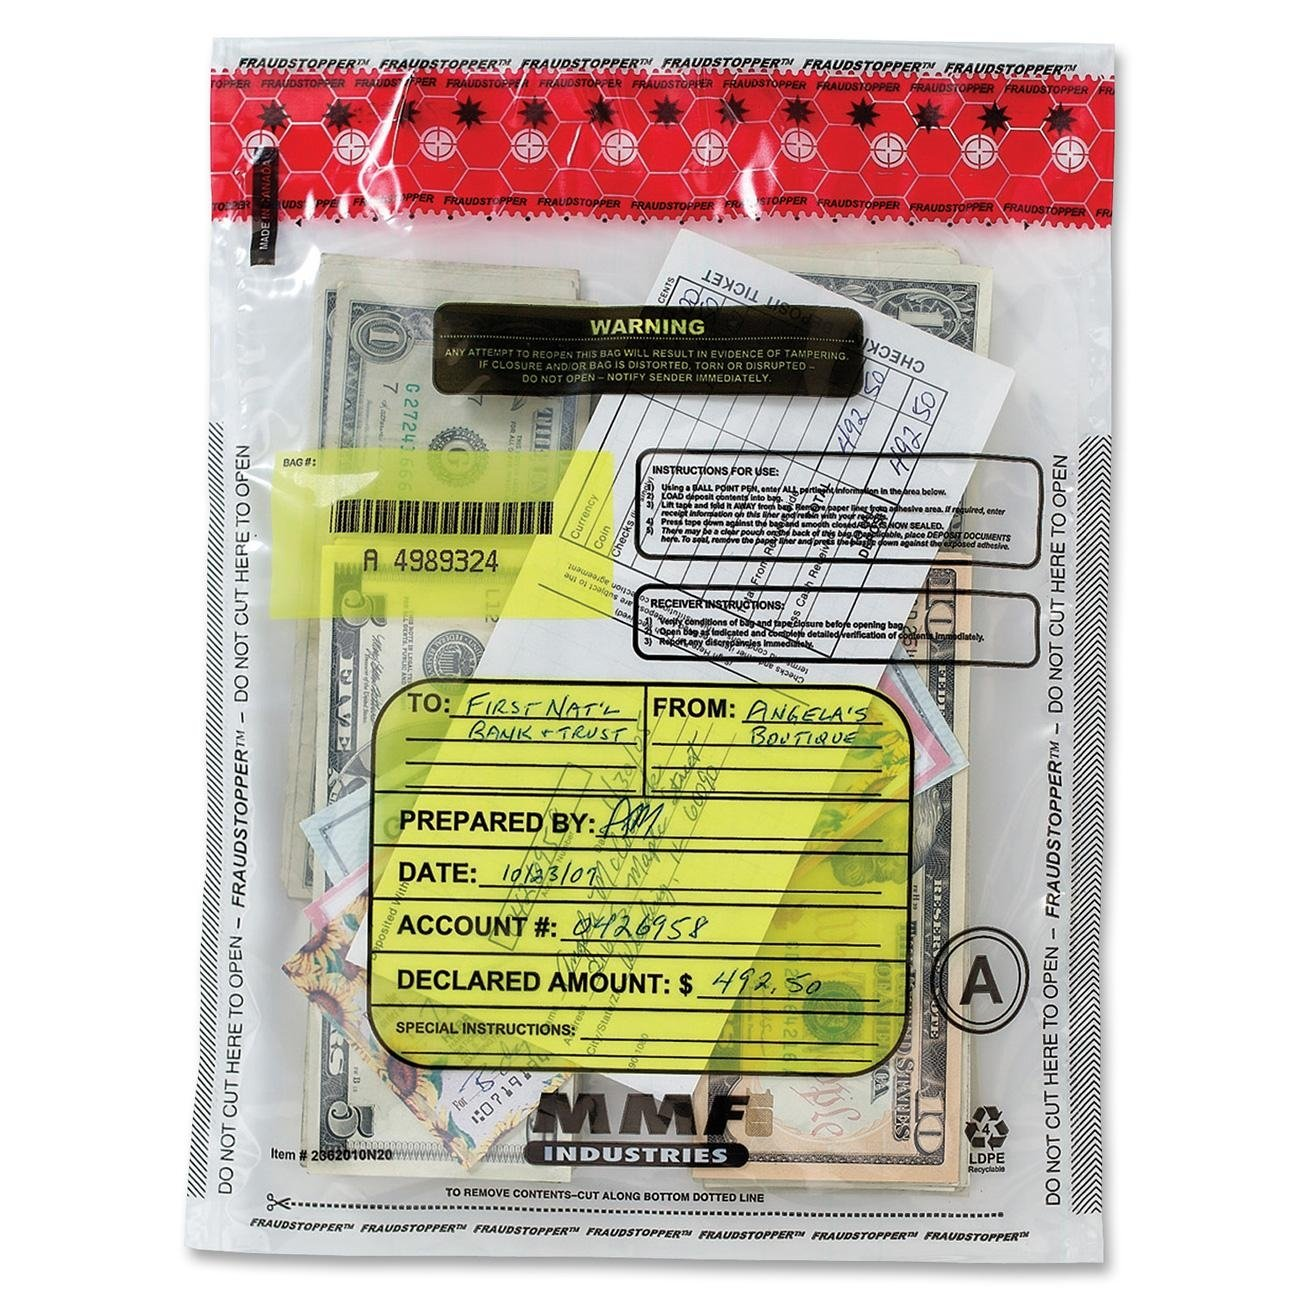 MMF Industries FraudStopper Tamper Evident Deposit Bags 2.5 mm 9 x 12 Inches 100 Bags per Box Clear 2362010N20